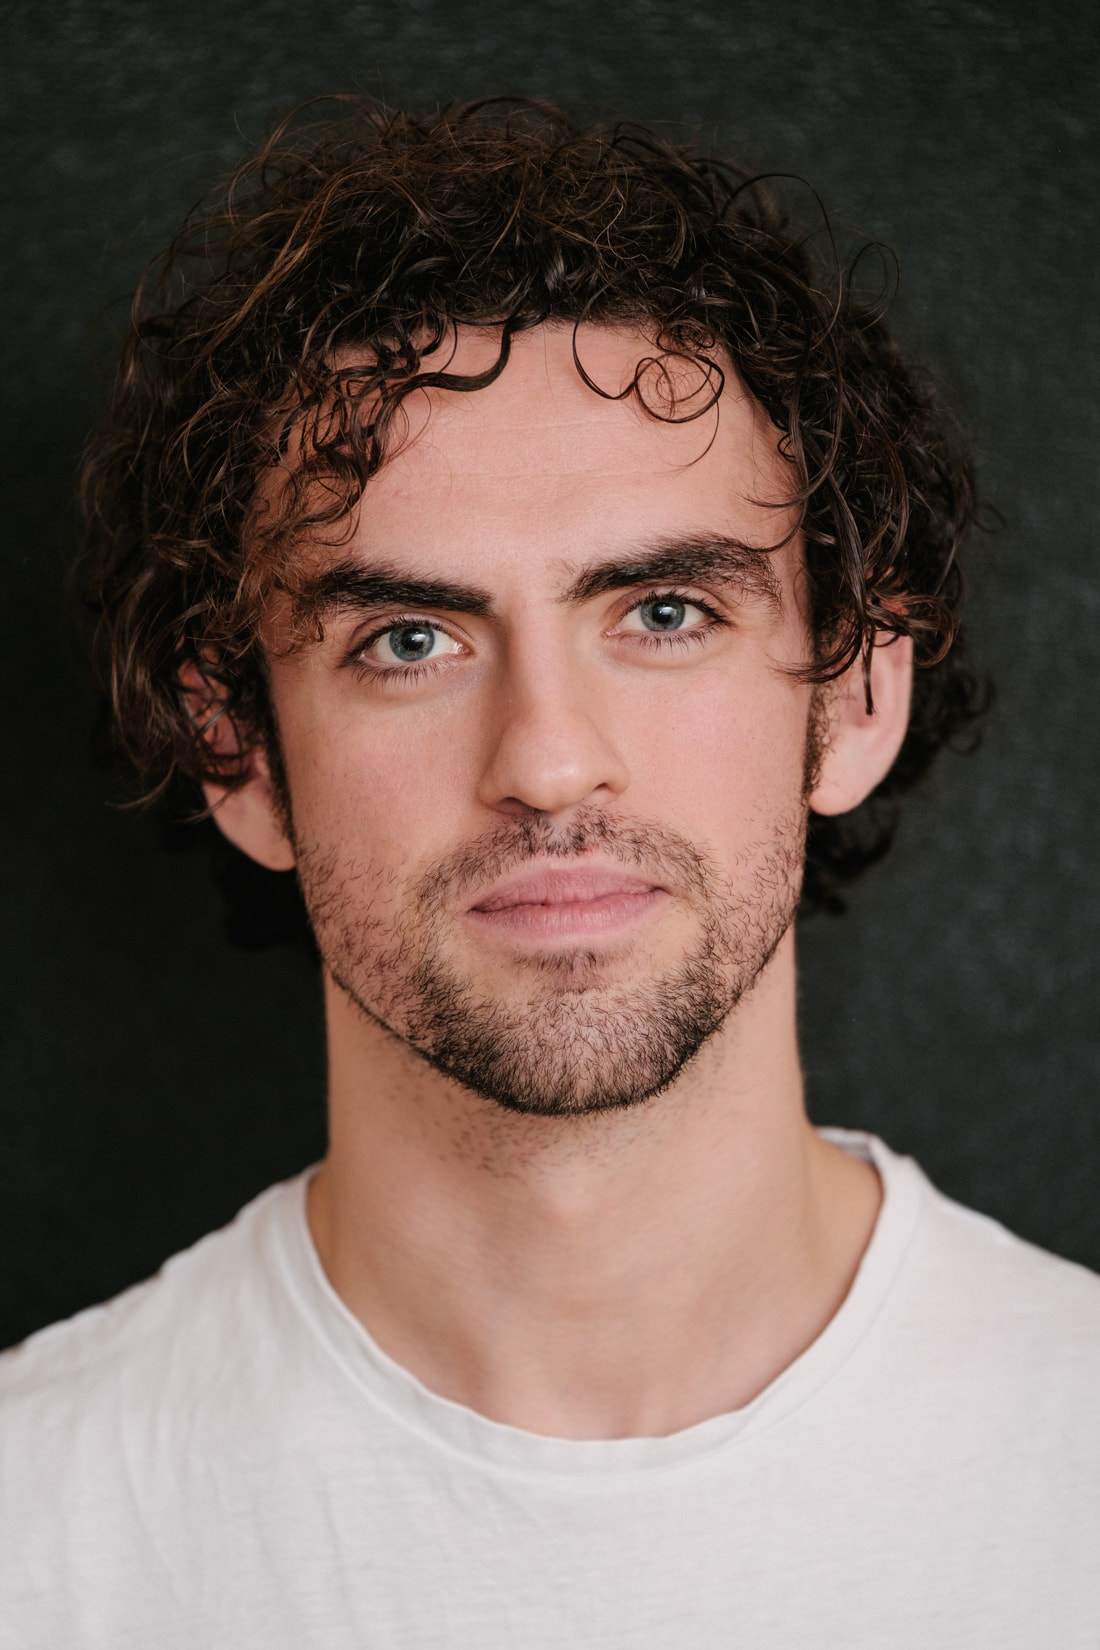 Trade 34 - Declan Perring: Actor and ball of energy. We set up a makeshift studio in his dining room to refresh his headshots.